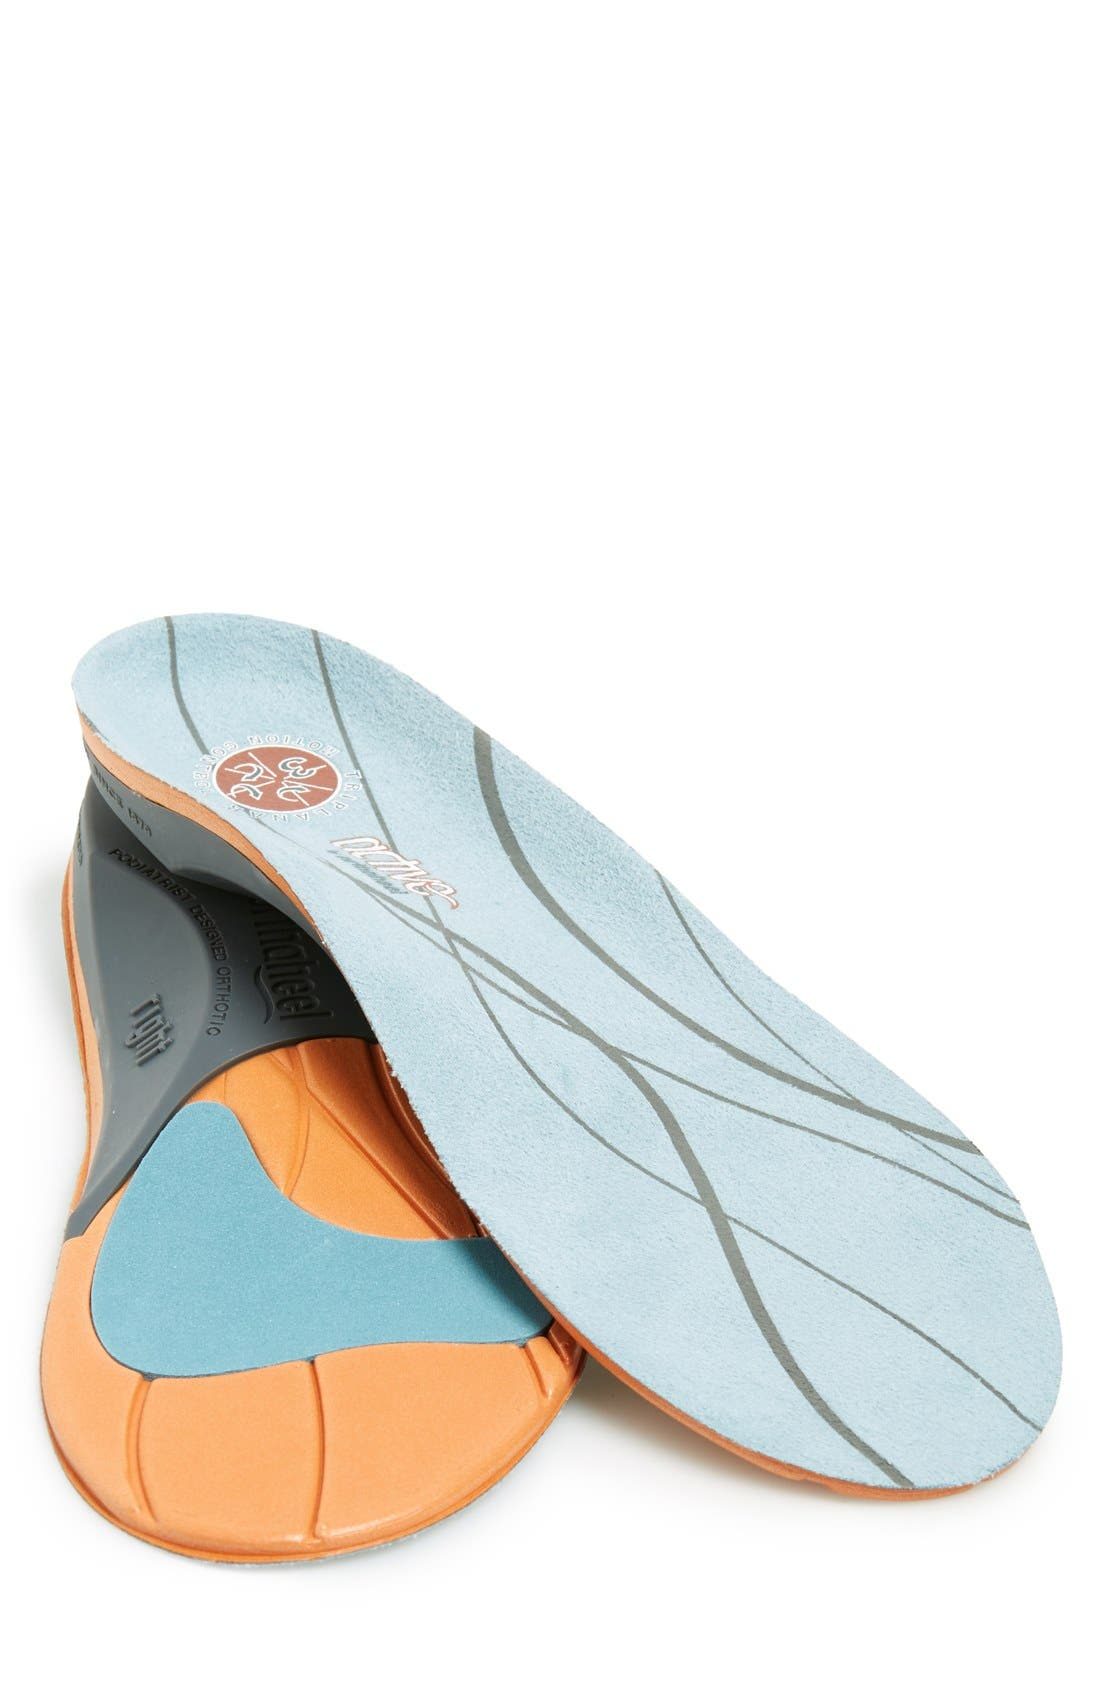 'Active' Full-Length Orthotic Insole,                             Main thumbnail 1, color,                             GREY